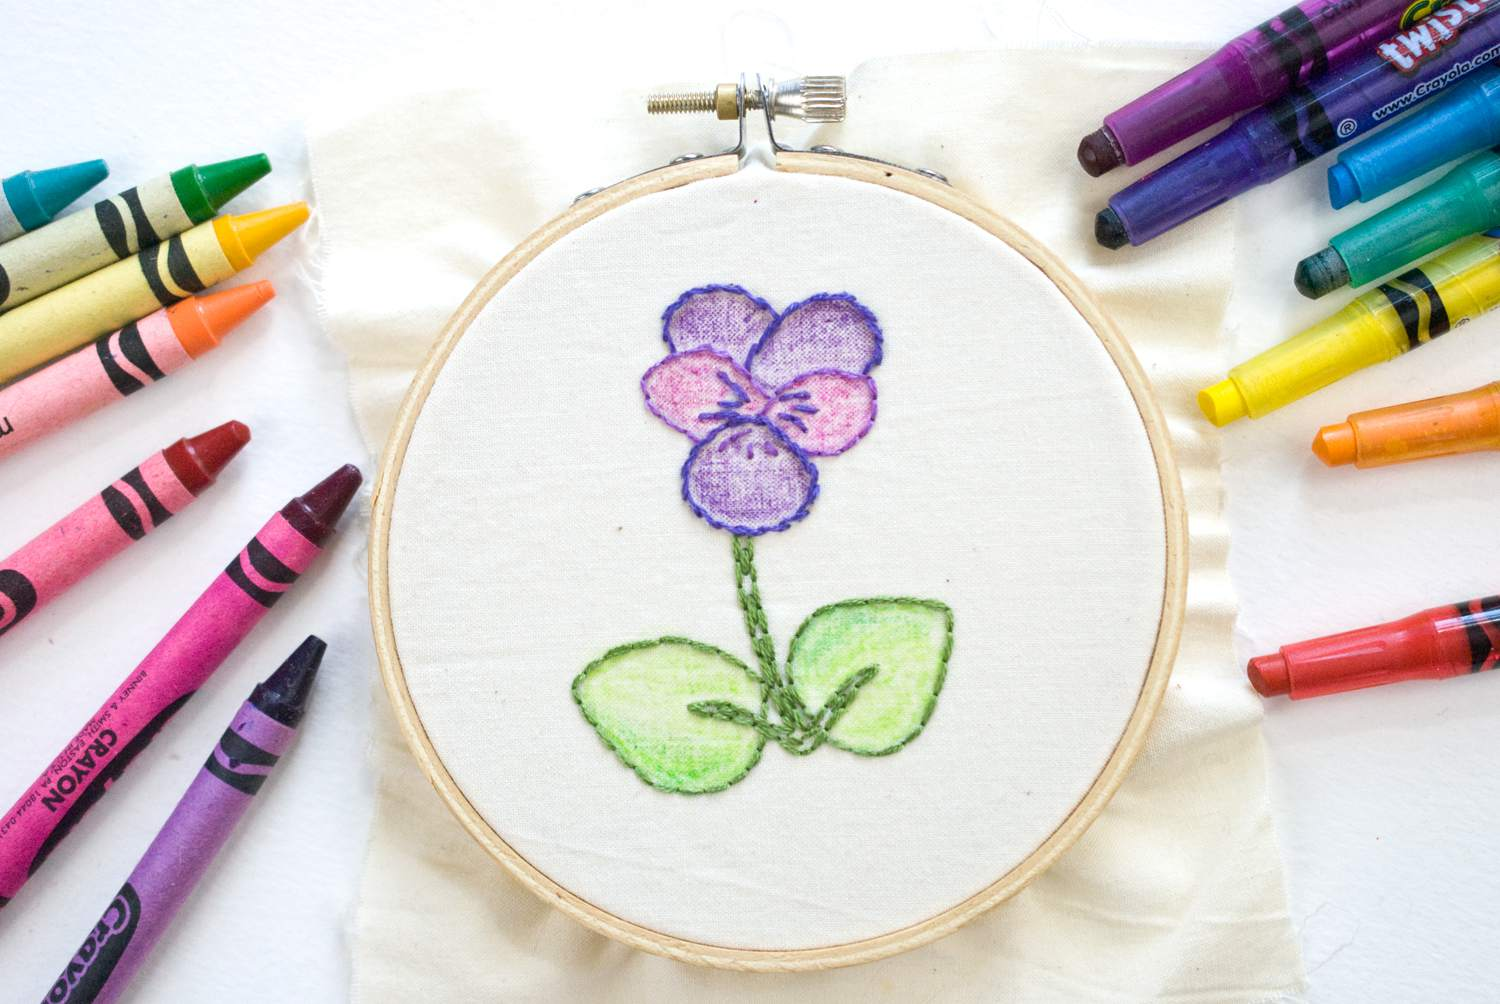 Embroidery in hoop with crayons surrounding the stitching.